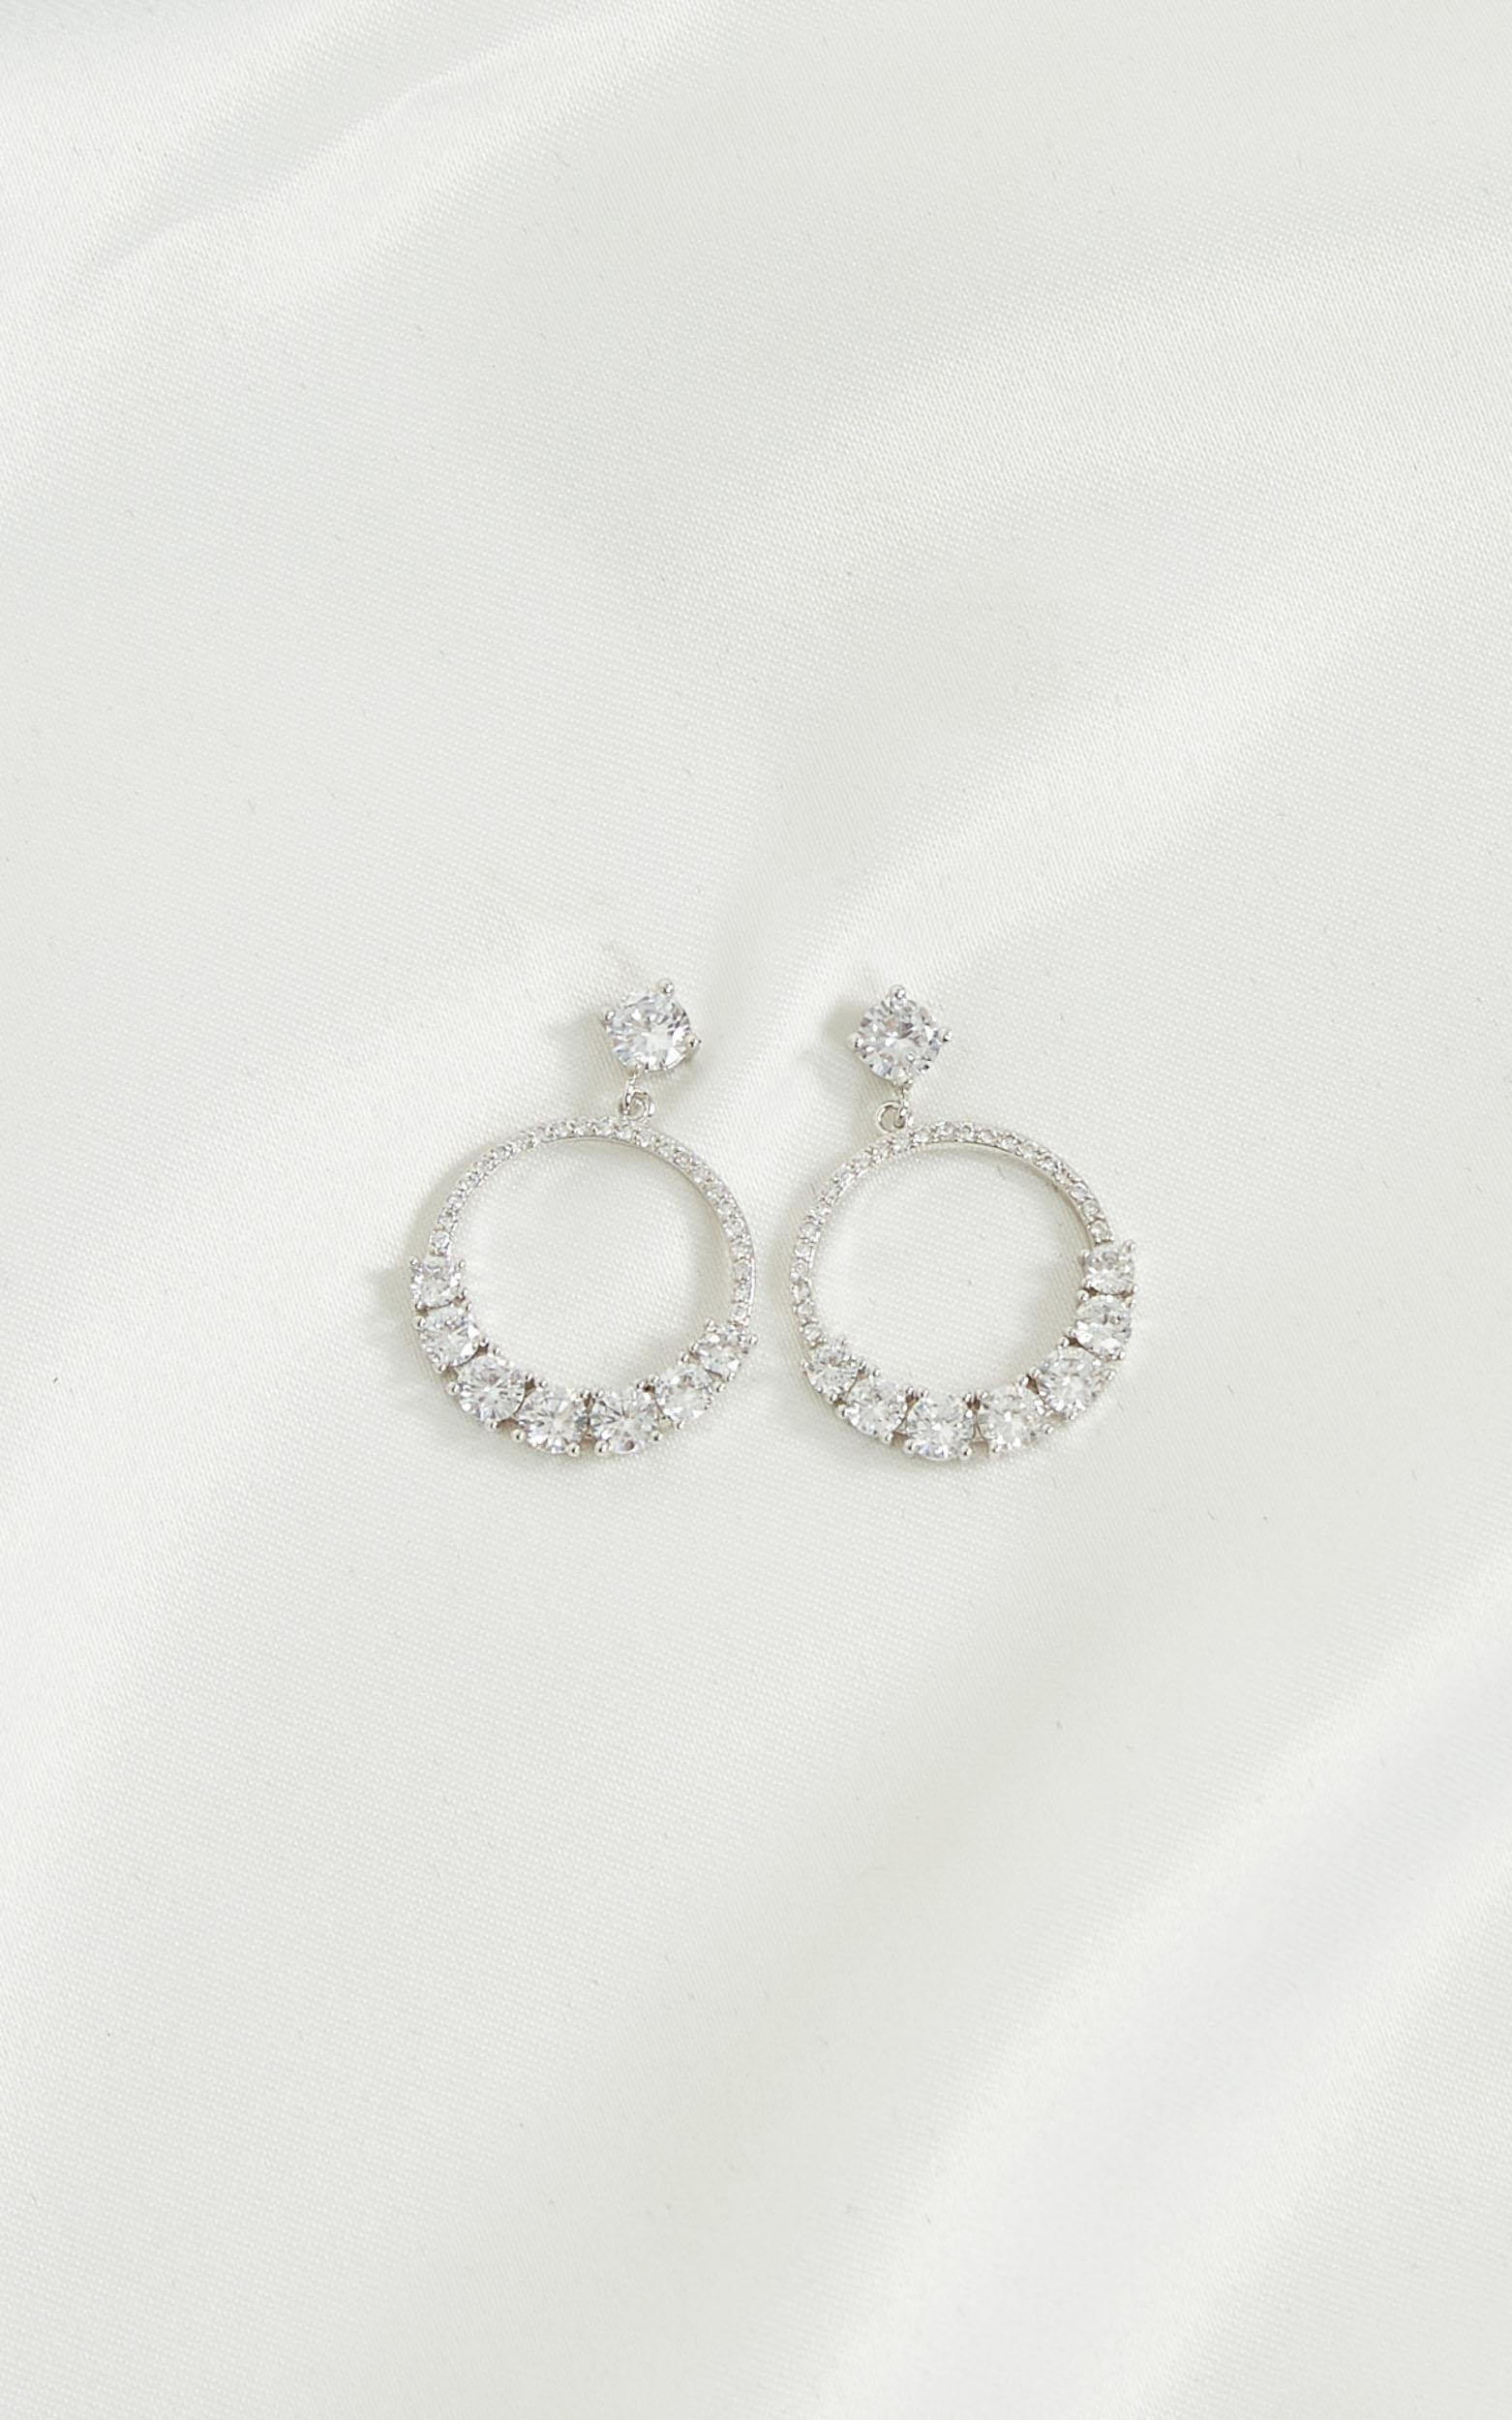 To The Point Earrings In Silver, , hi-res image number null